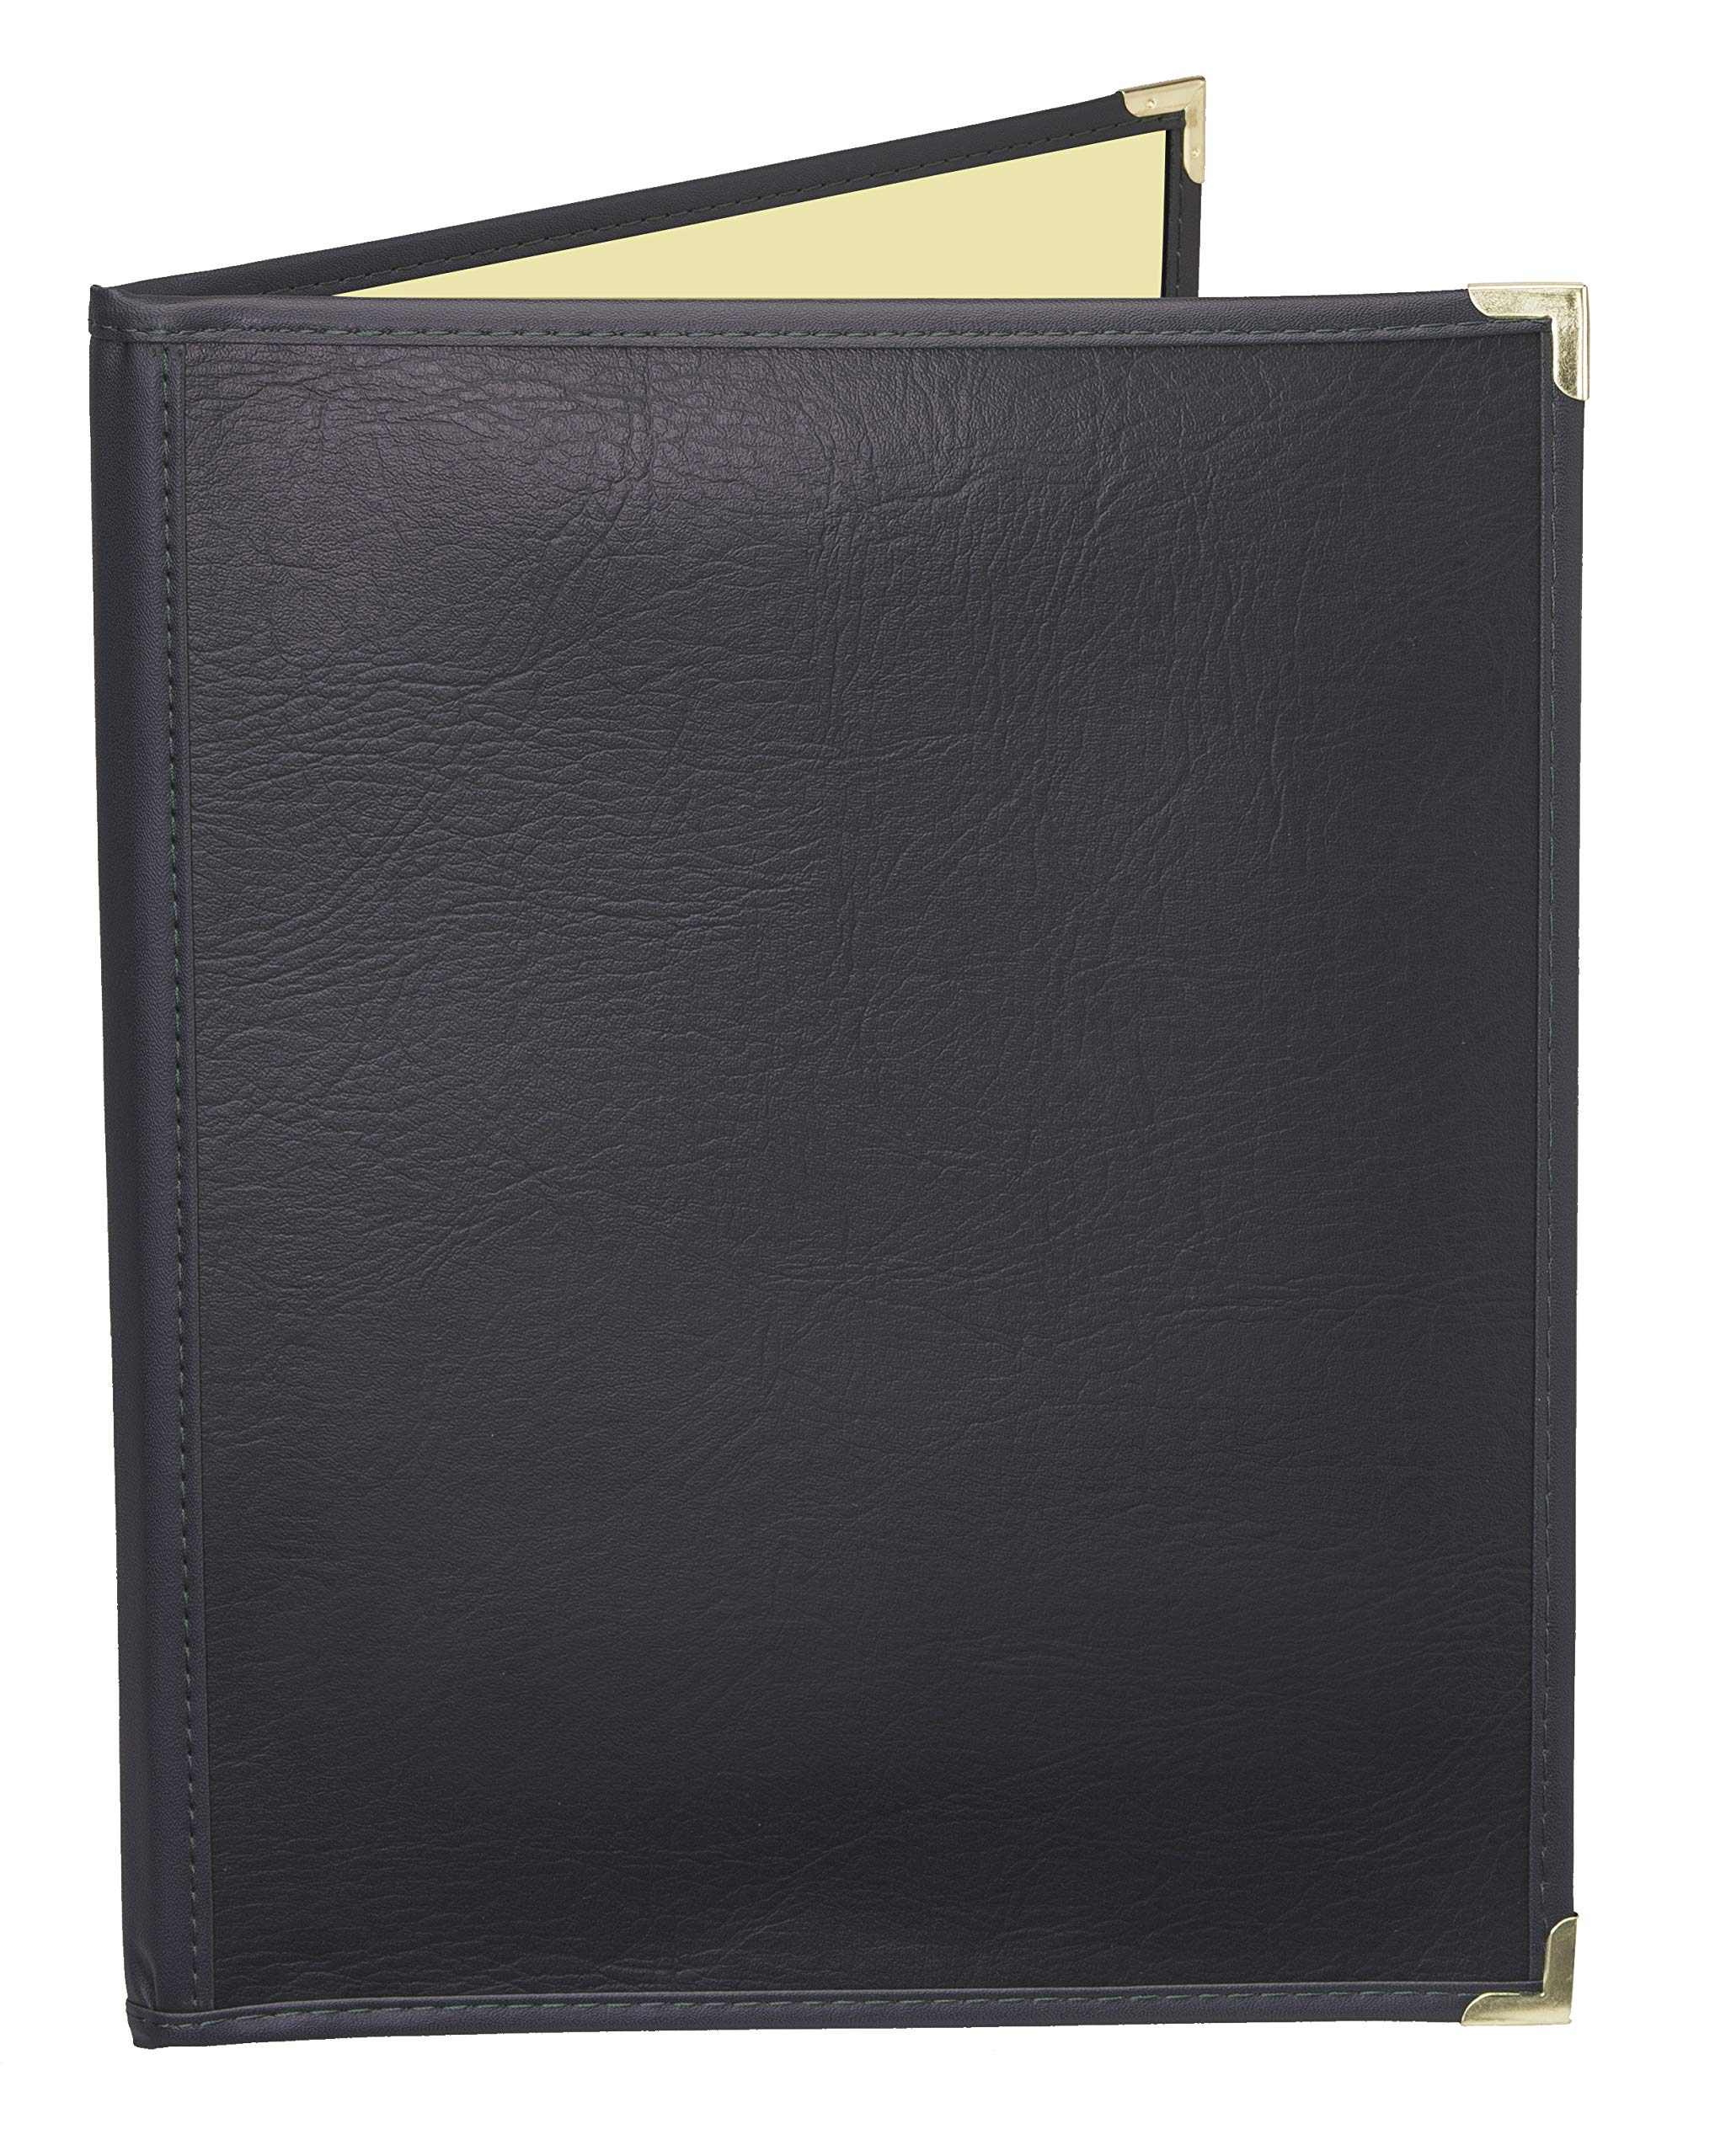 JR SALES CORP, FlexMC-A2V811, 25 Pack of Premium semi-flexible Menu Covers with inside café style pockets, Soft leather-like supported cover with crystal clear vinyl inside pockets. Two pocket booklet with 2 views. Holds 8.5'' x 11'' Inserts. Color: Black